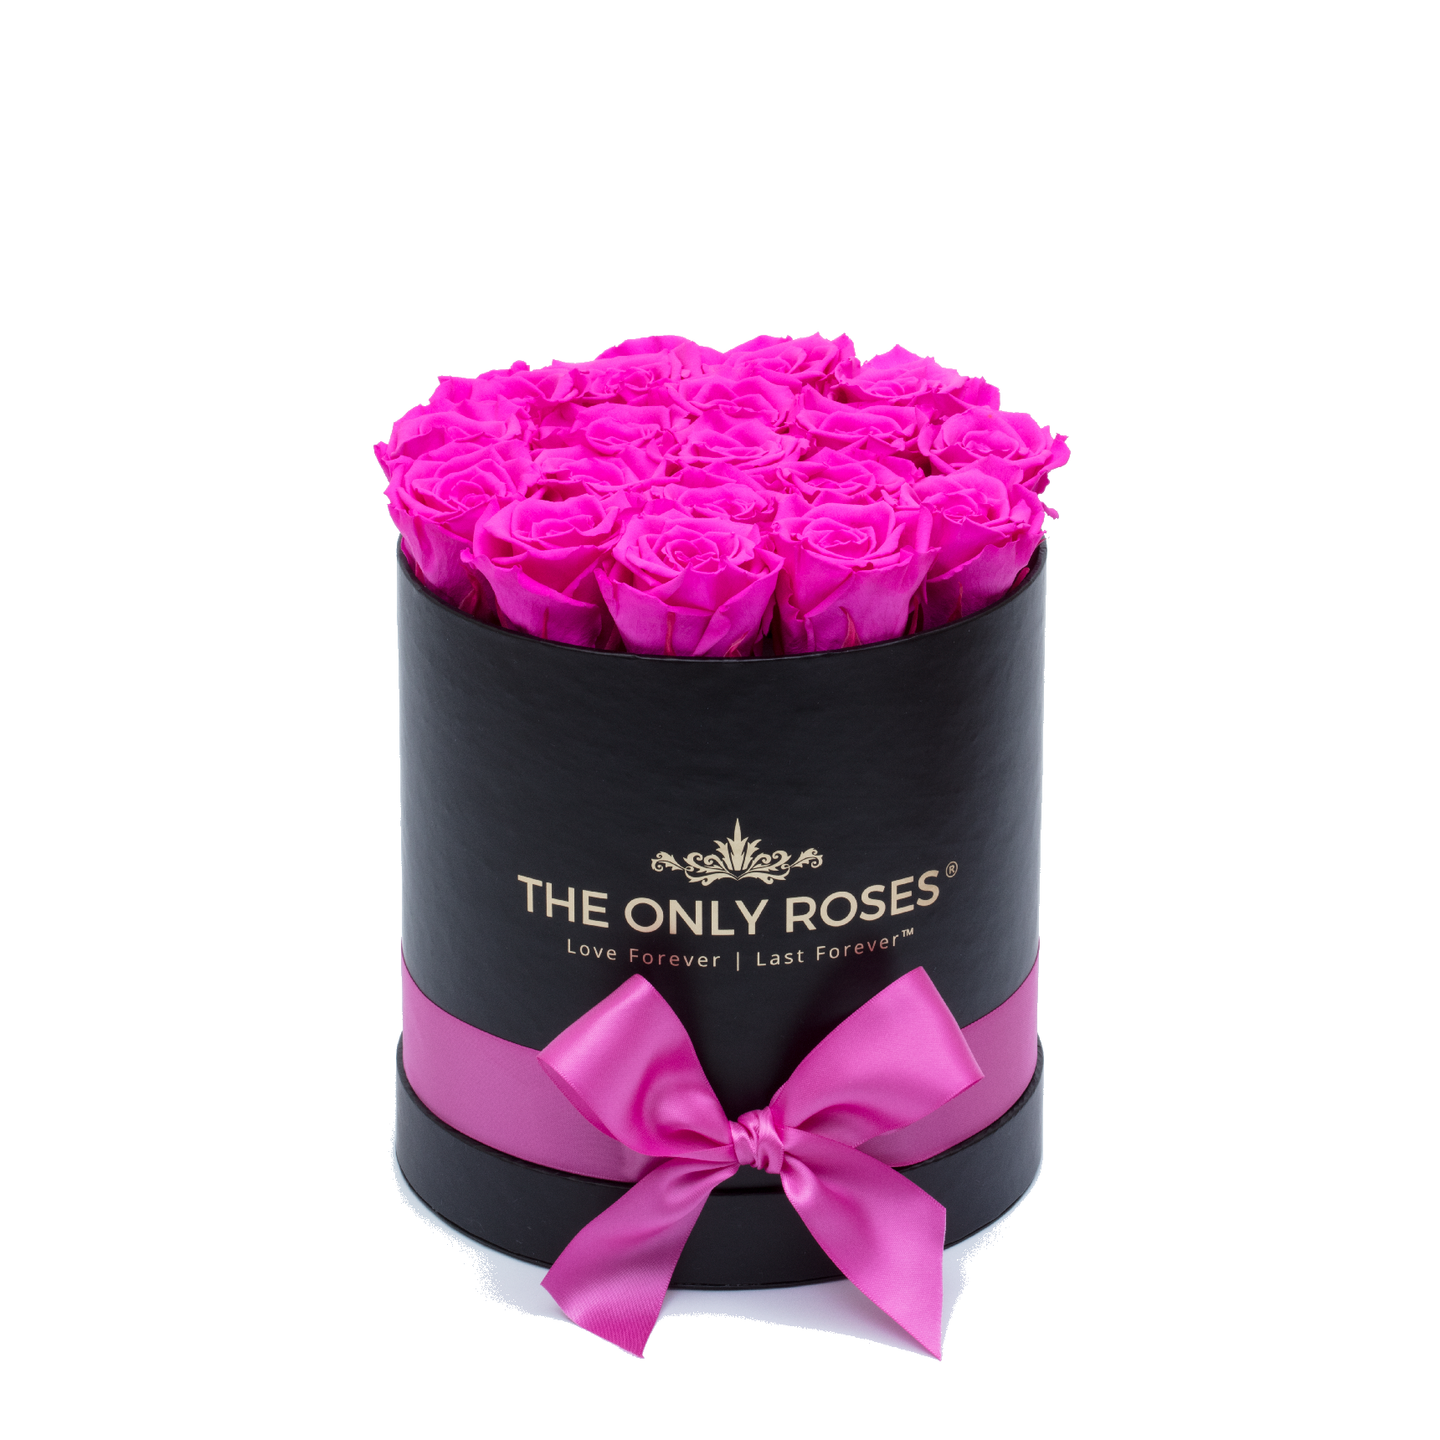 Hot Pink Preserved Roses | Small Round Black Huggy Rose Box - The Only Roses